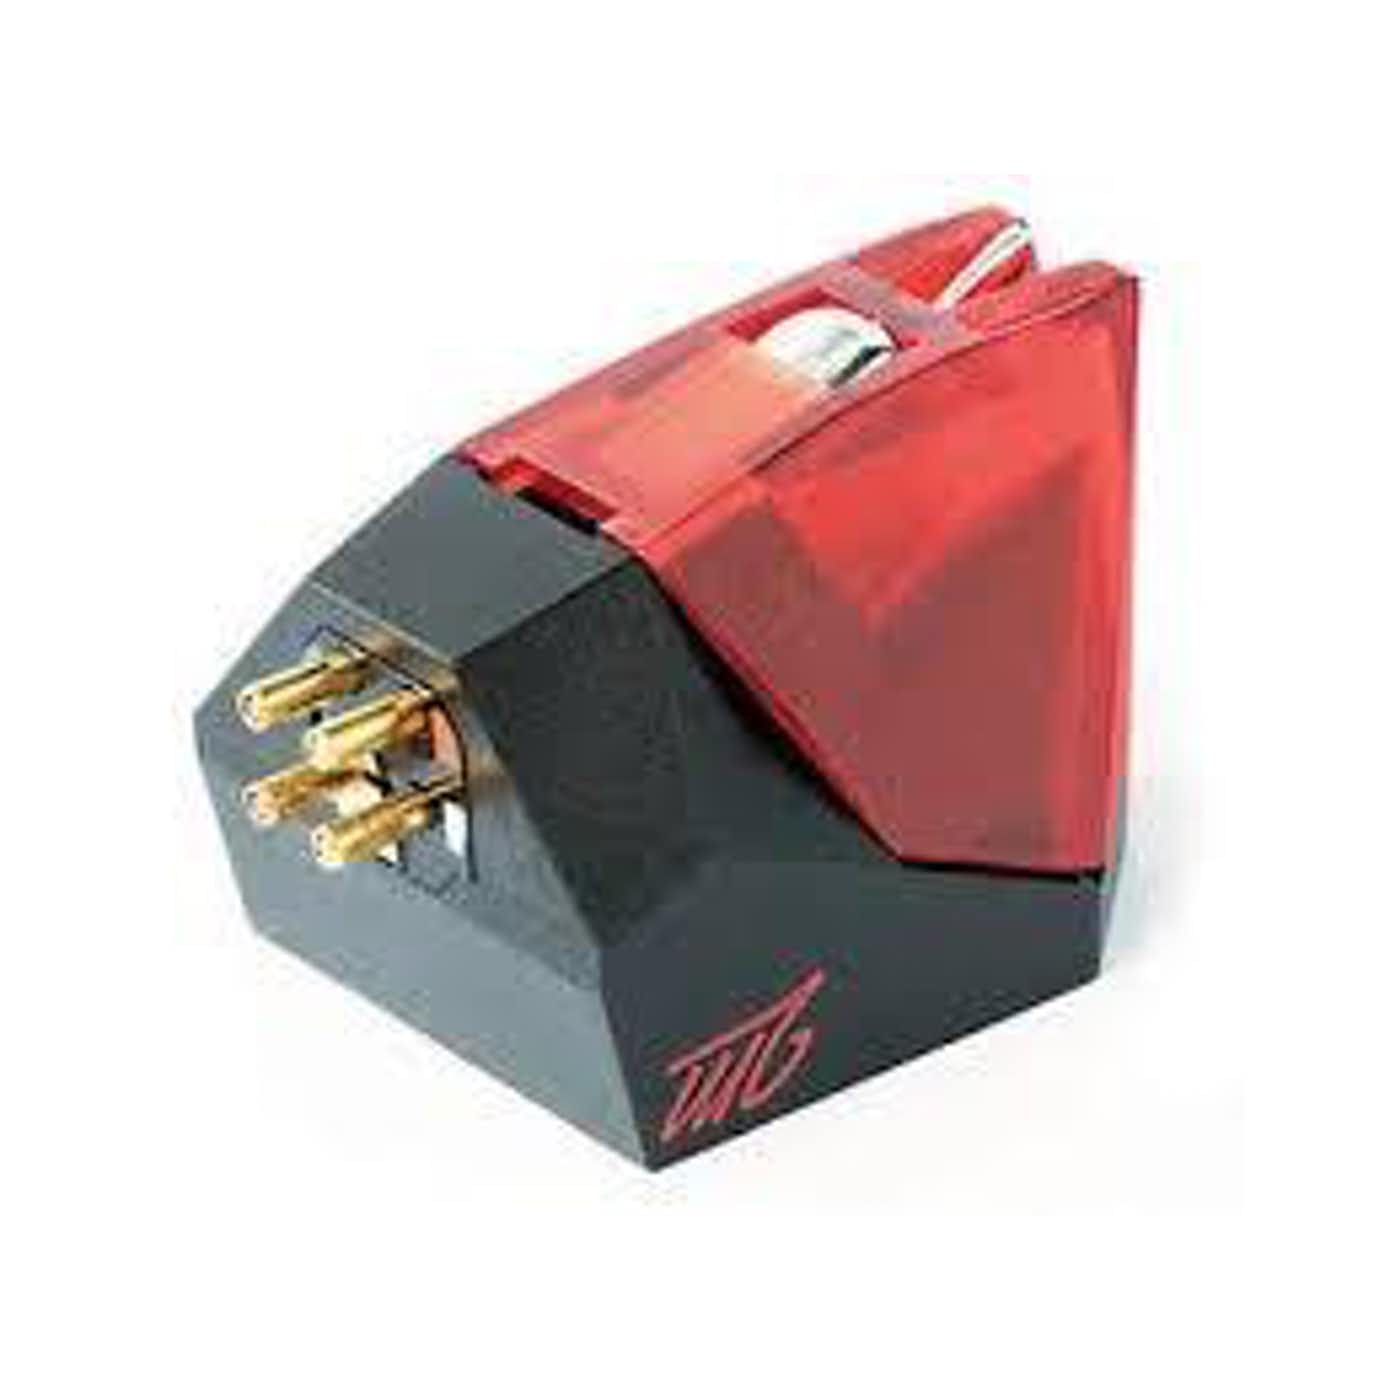 Ortofon 2M Red Pick-up